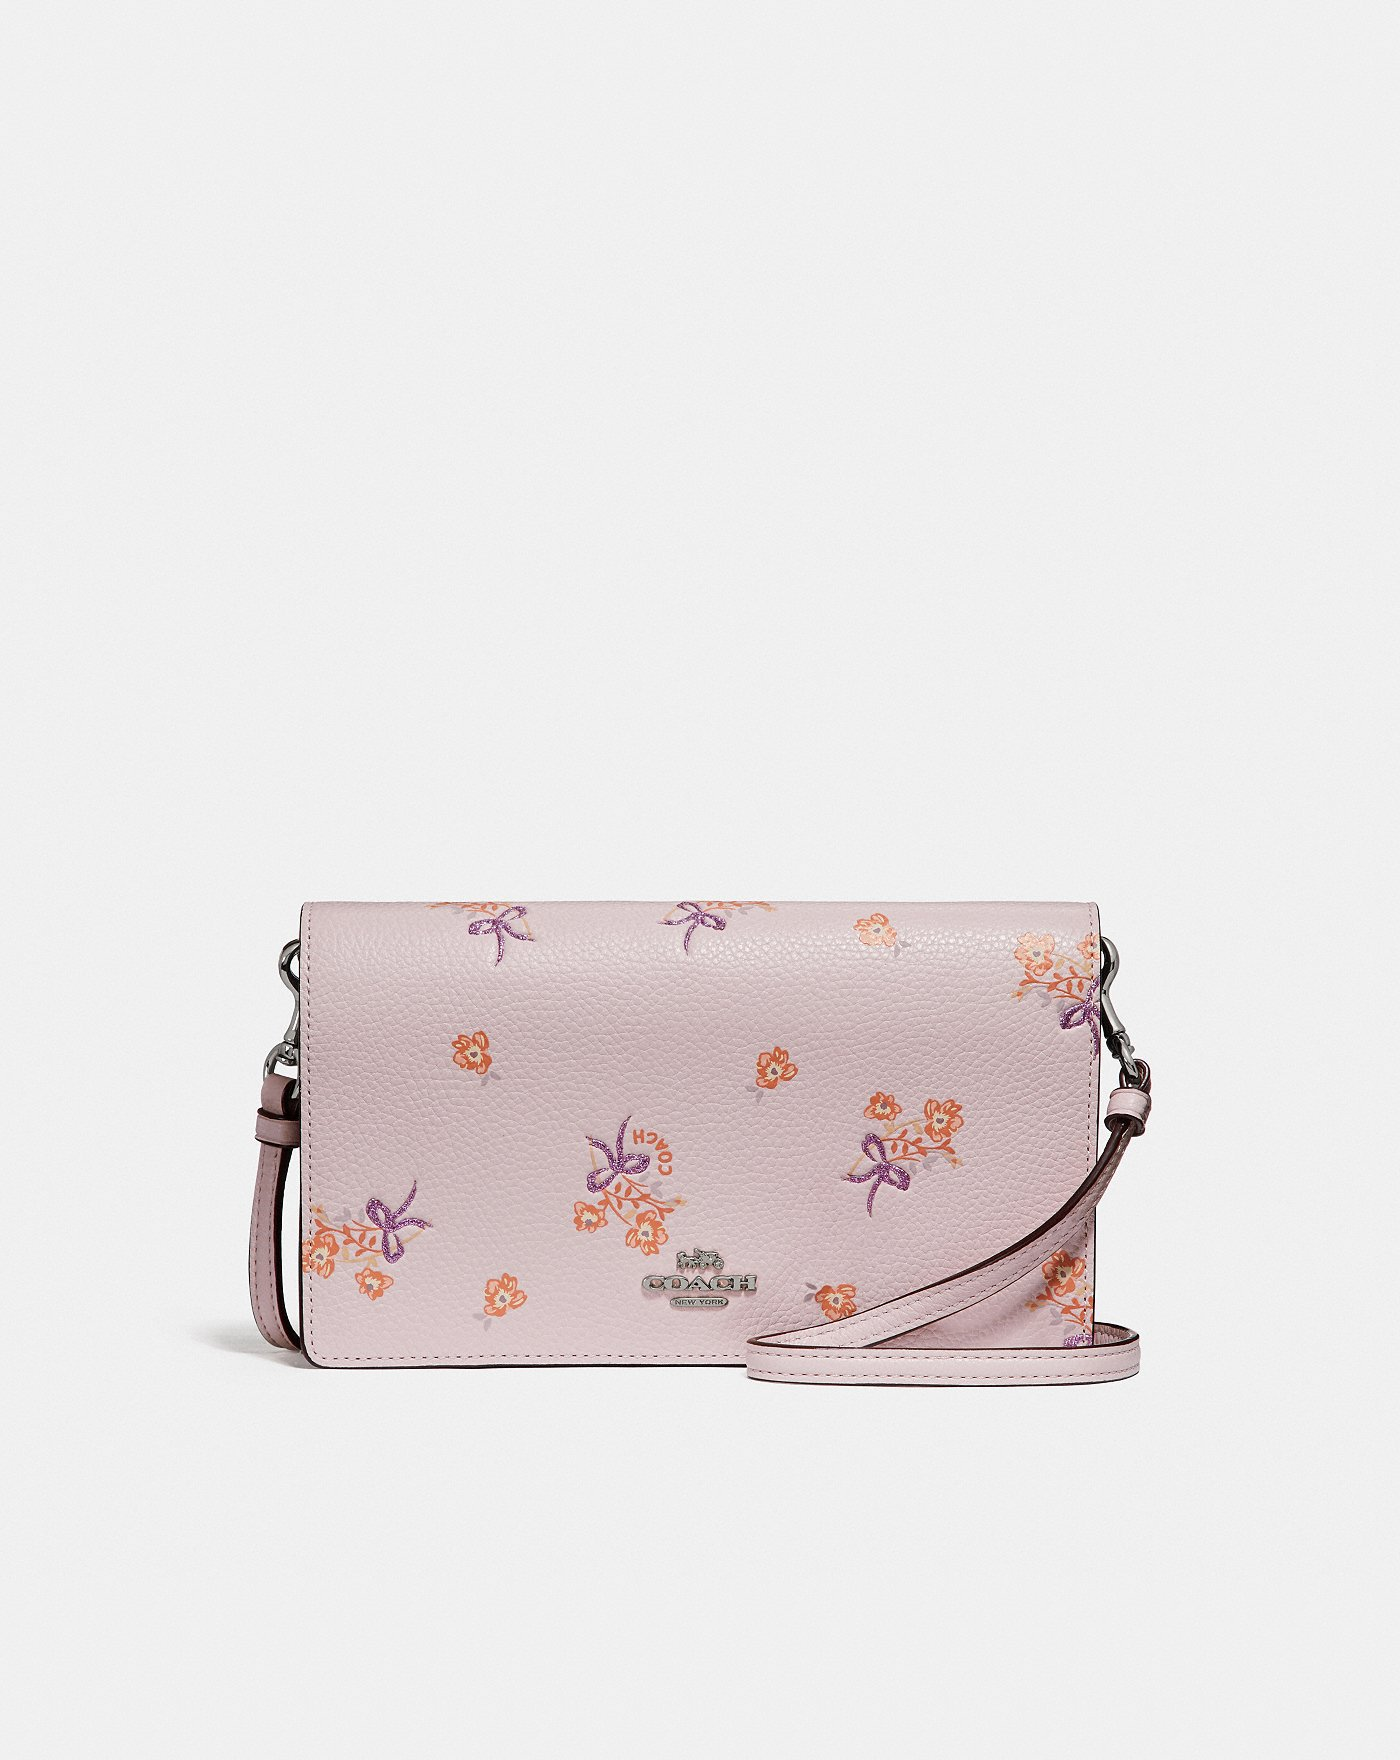 Coach Hayden Foldover Crossbody Clutch With Floral Bow Print Swagger 20 In Pebbled Leather Peach